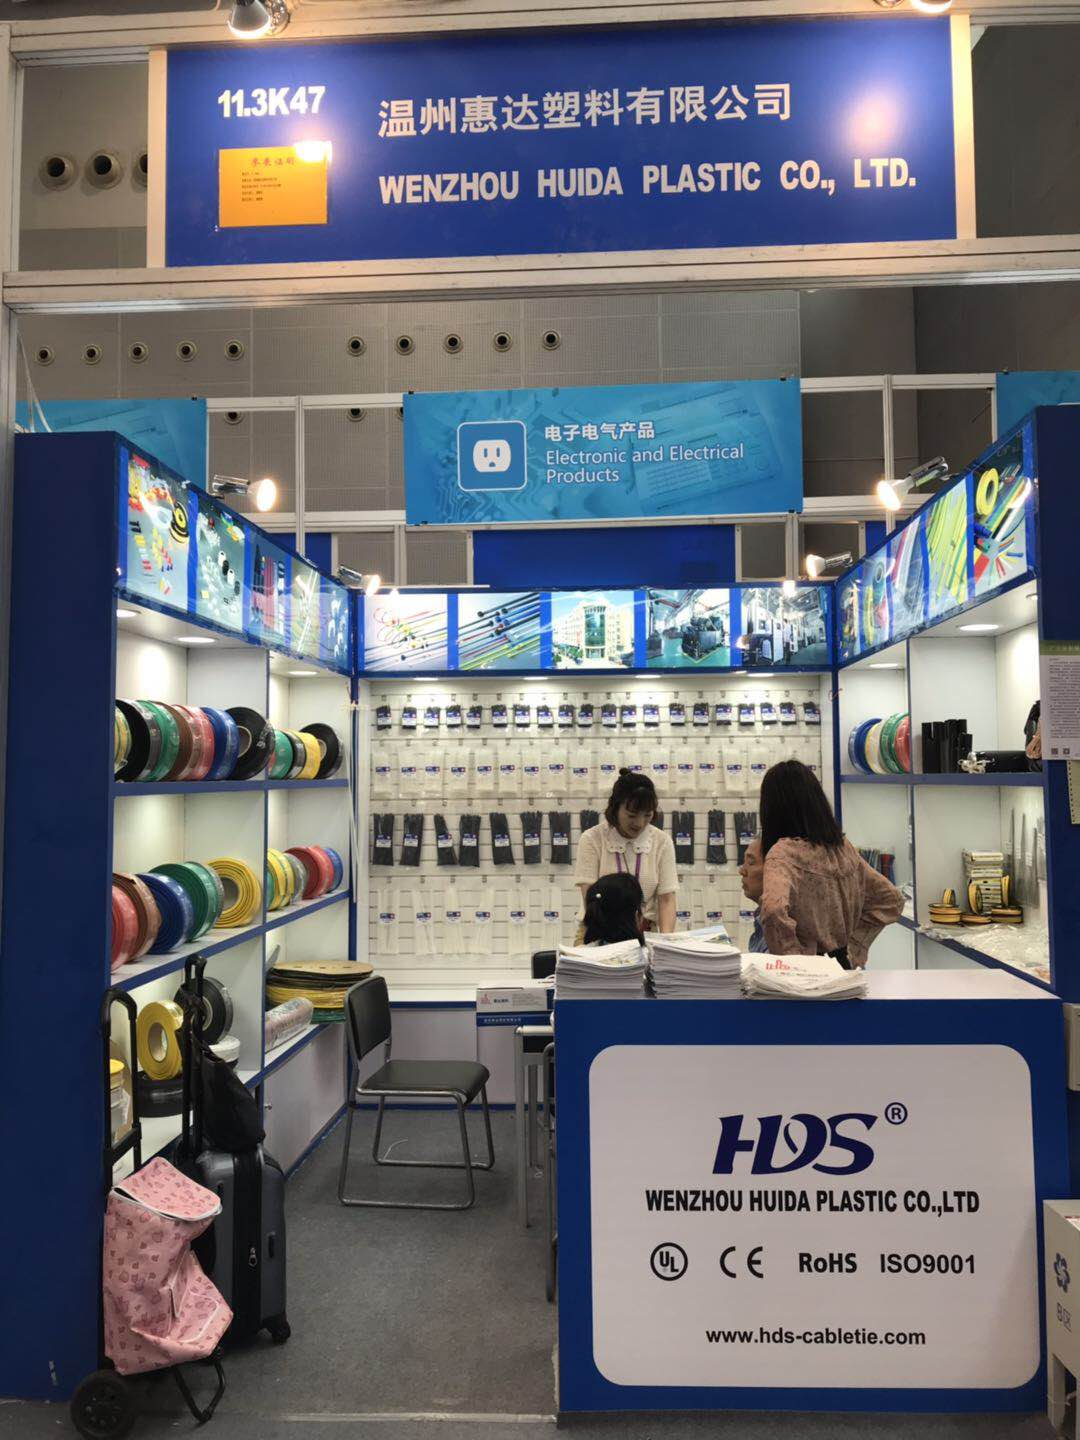 125 Canton Fair in April,2019